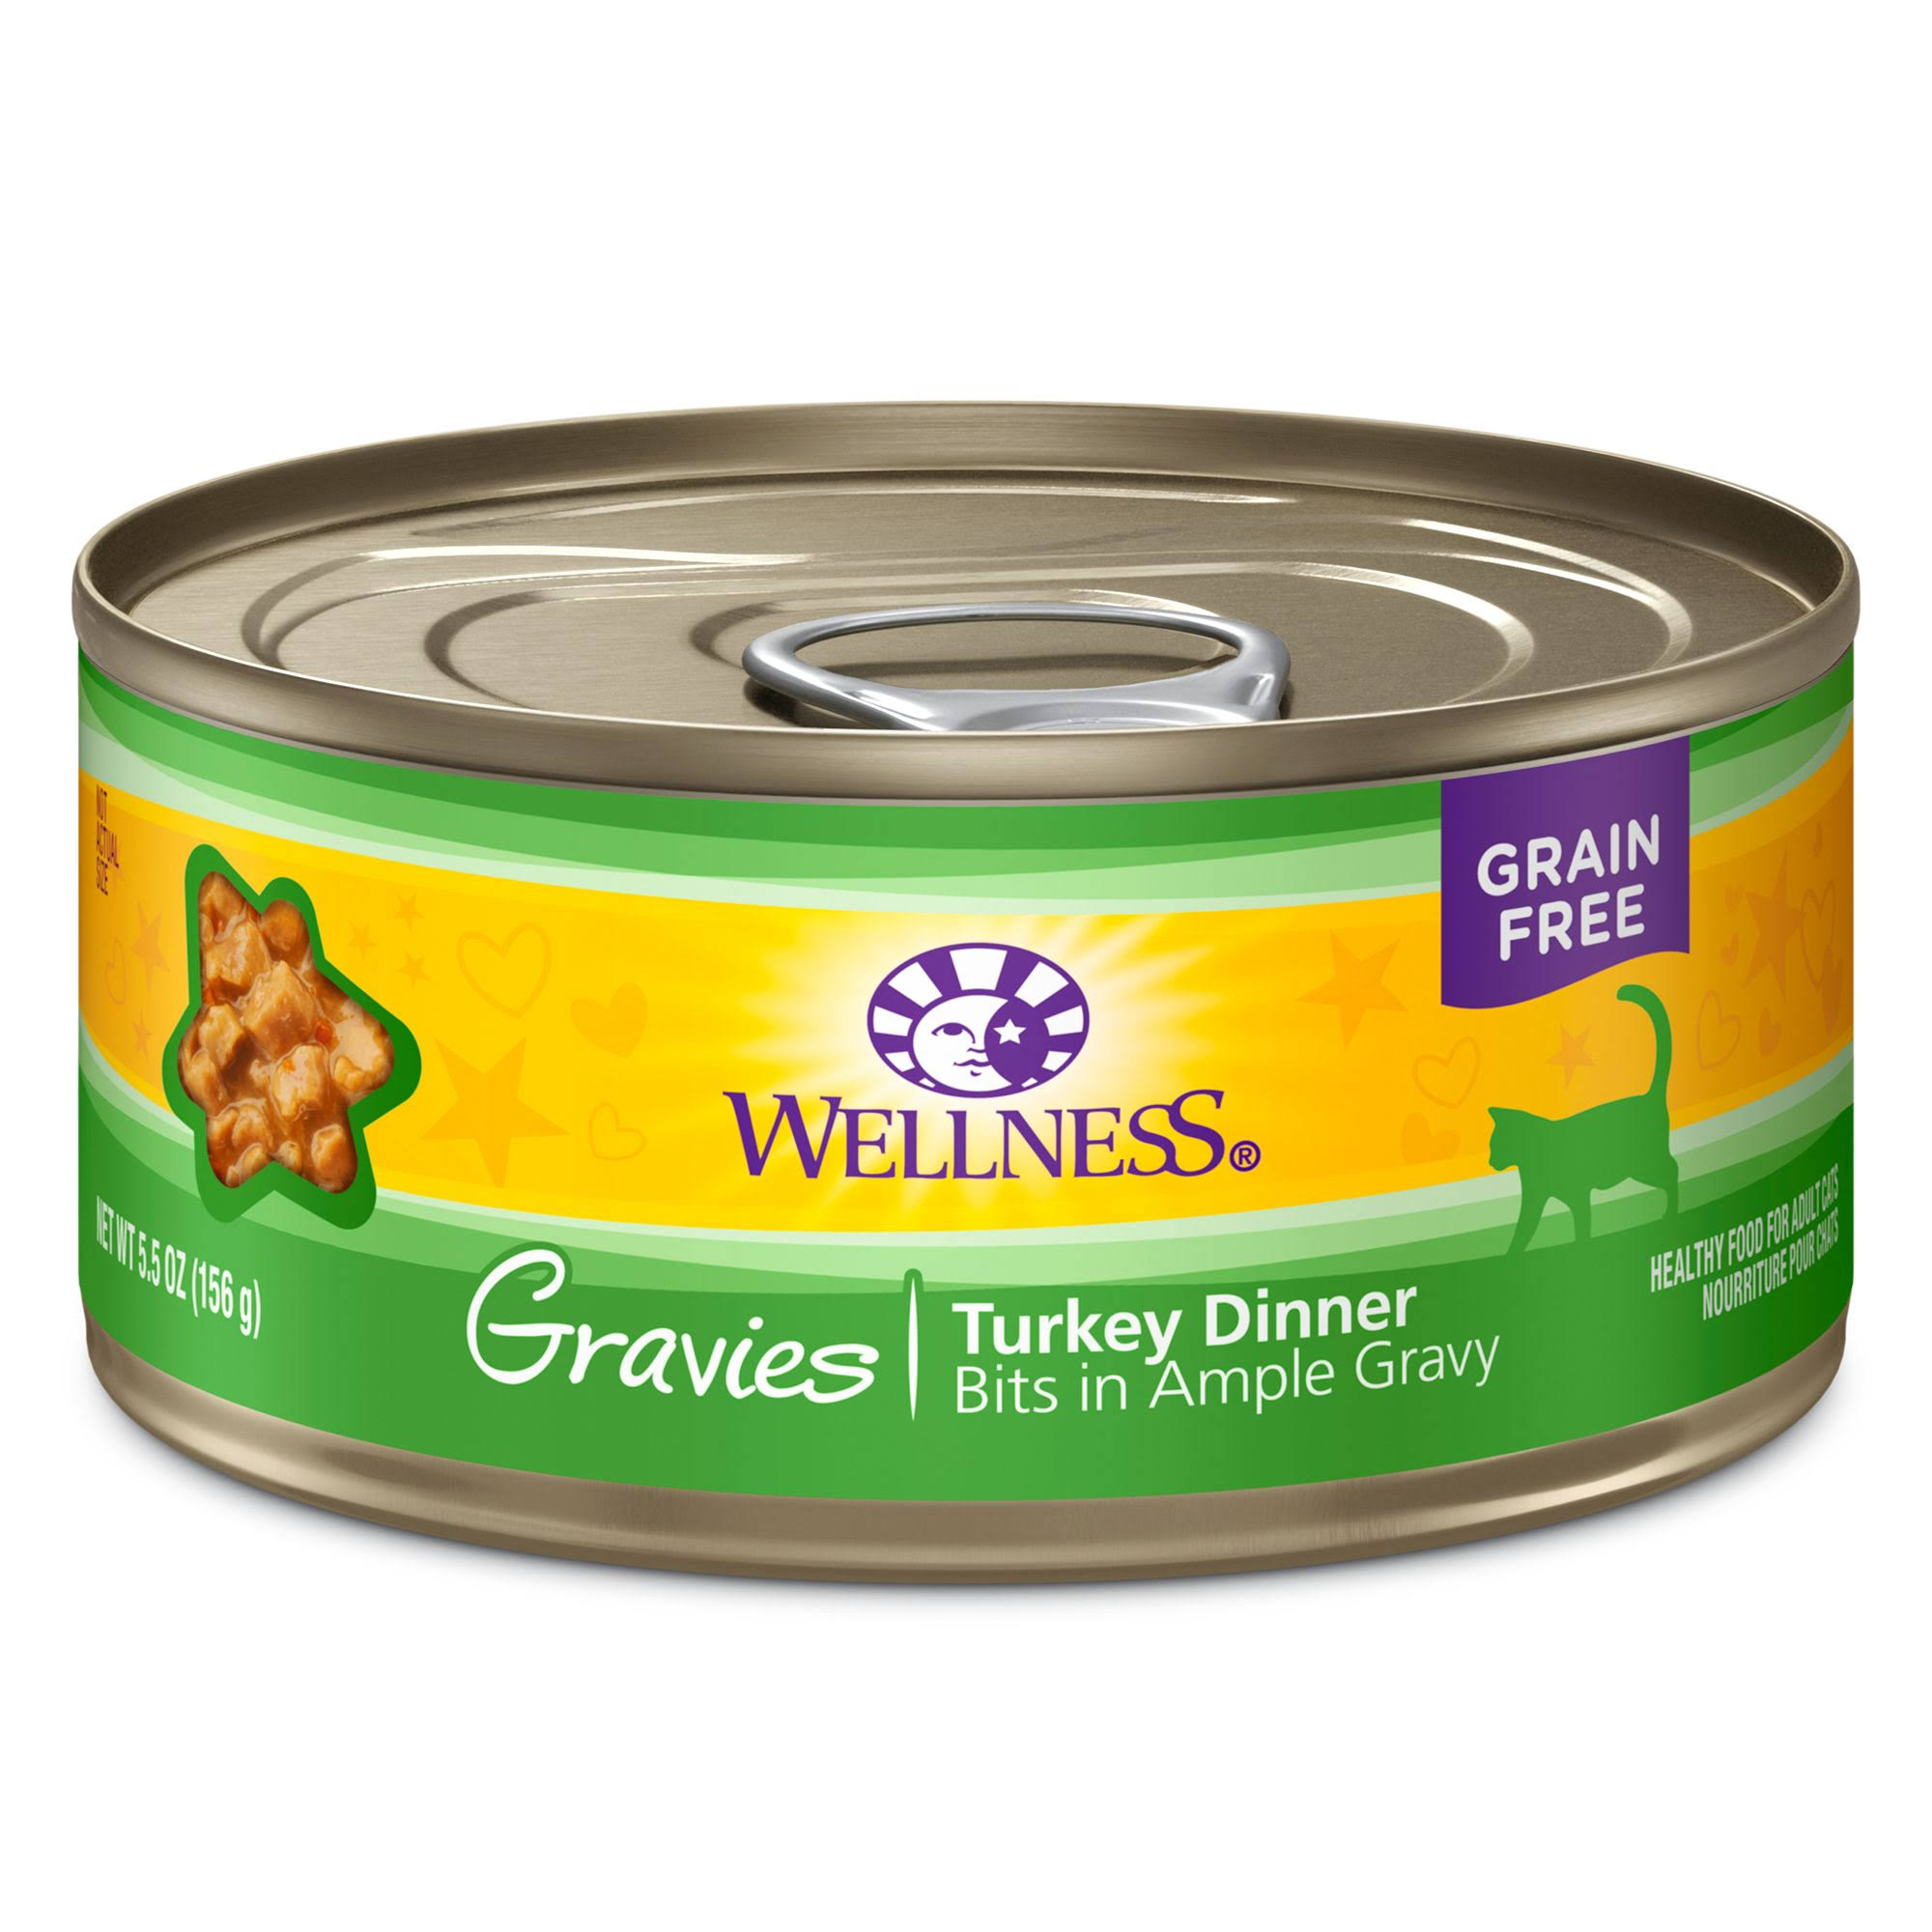 Wellness Complete Health Cat Food - Turkey Dinner Morsels In Savory Gravy, Cubed